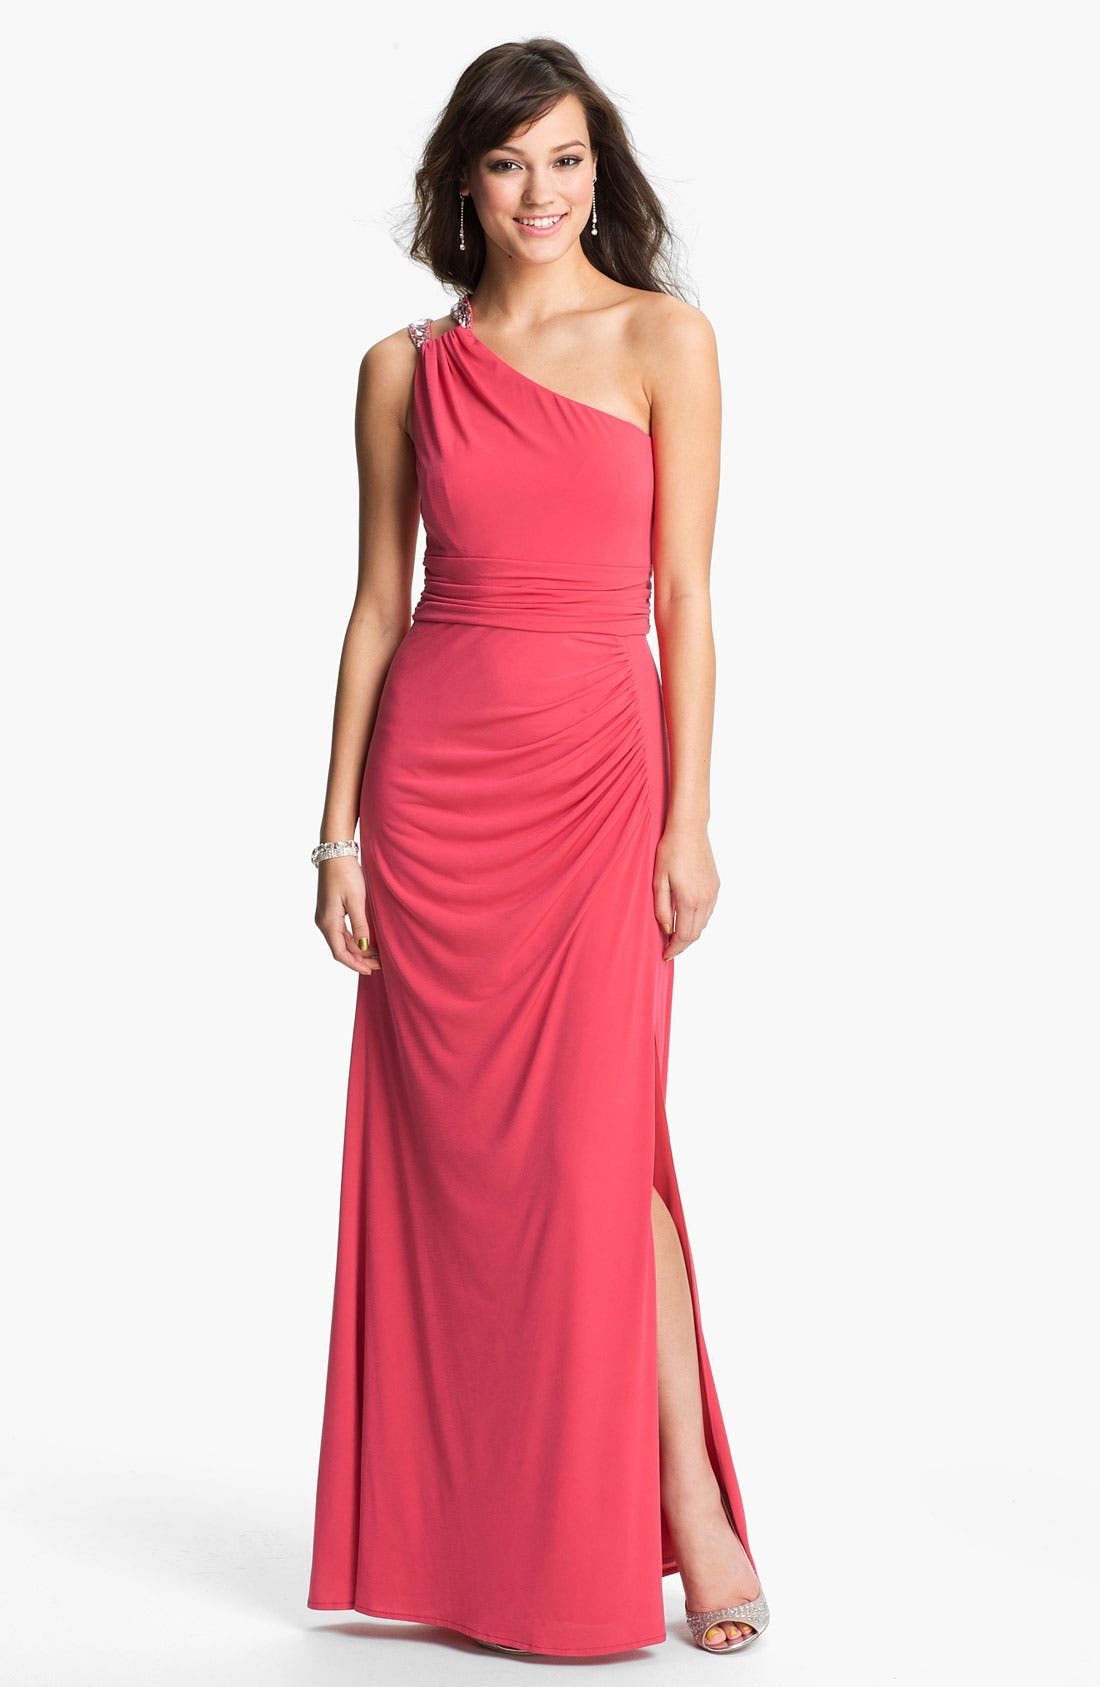 Alternate Image 1 Selected - Hailey by Adrianna Papell Embellished One Shoulder Gown (Online Exclusive)